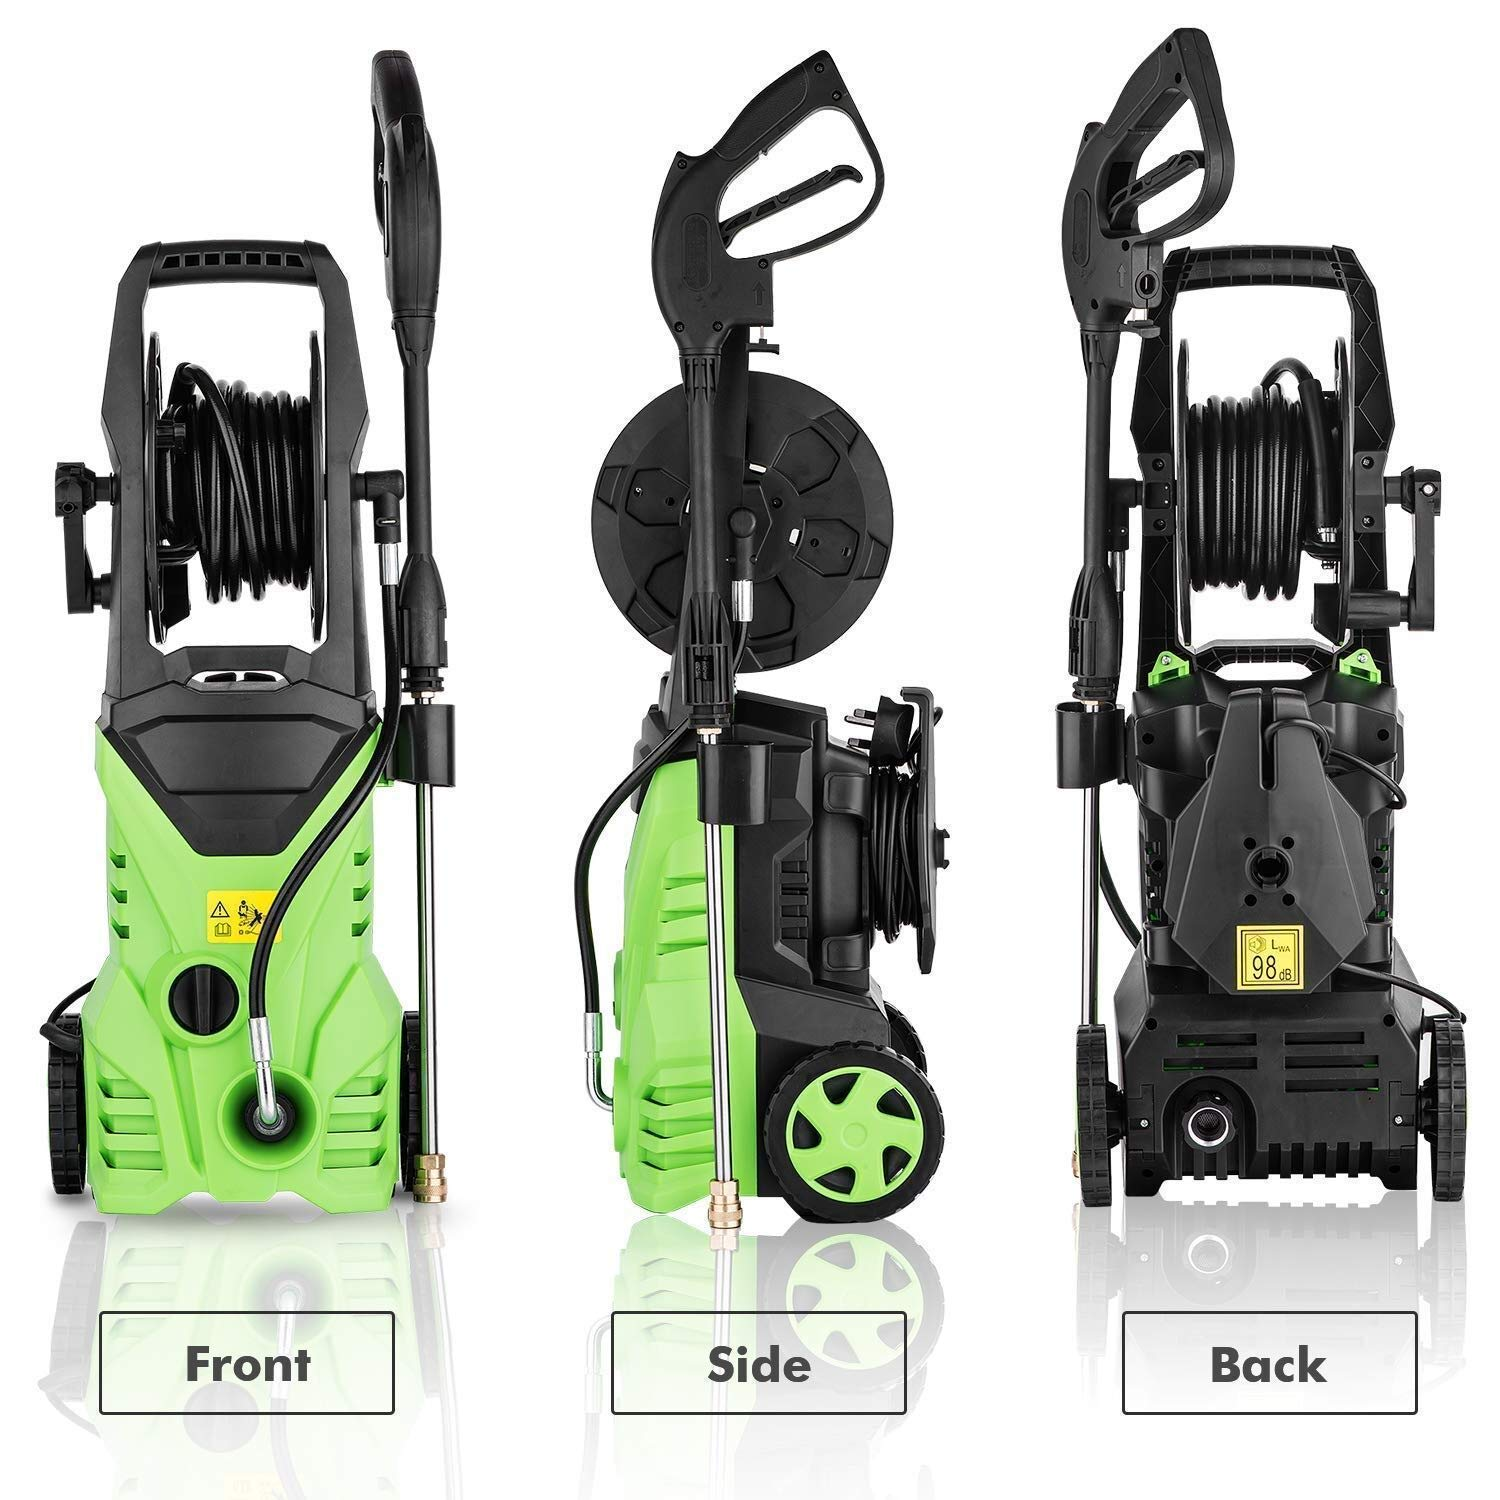 Homdox Electric High Pressure Washer 3000PSI 1.8GPM Power Pressure Washer Machine with Power Hose Gun Turbo Wand 5 Interchangeable Nozzles (Size 2)